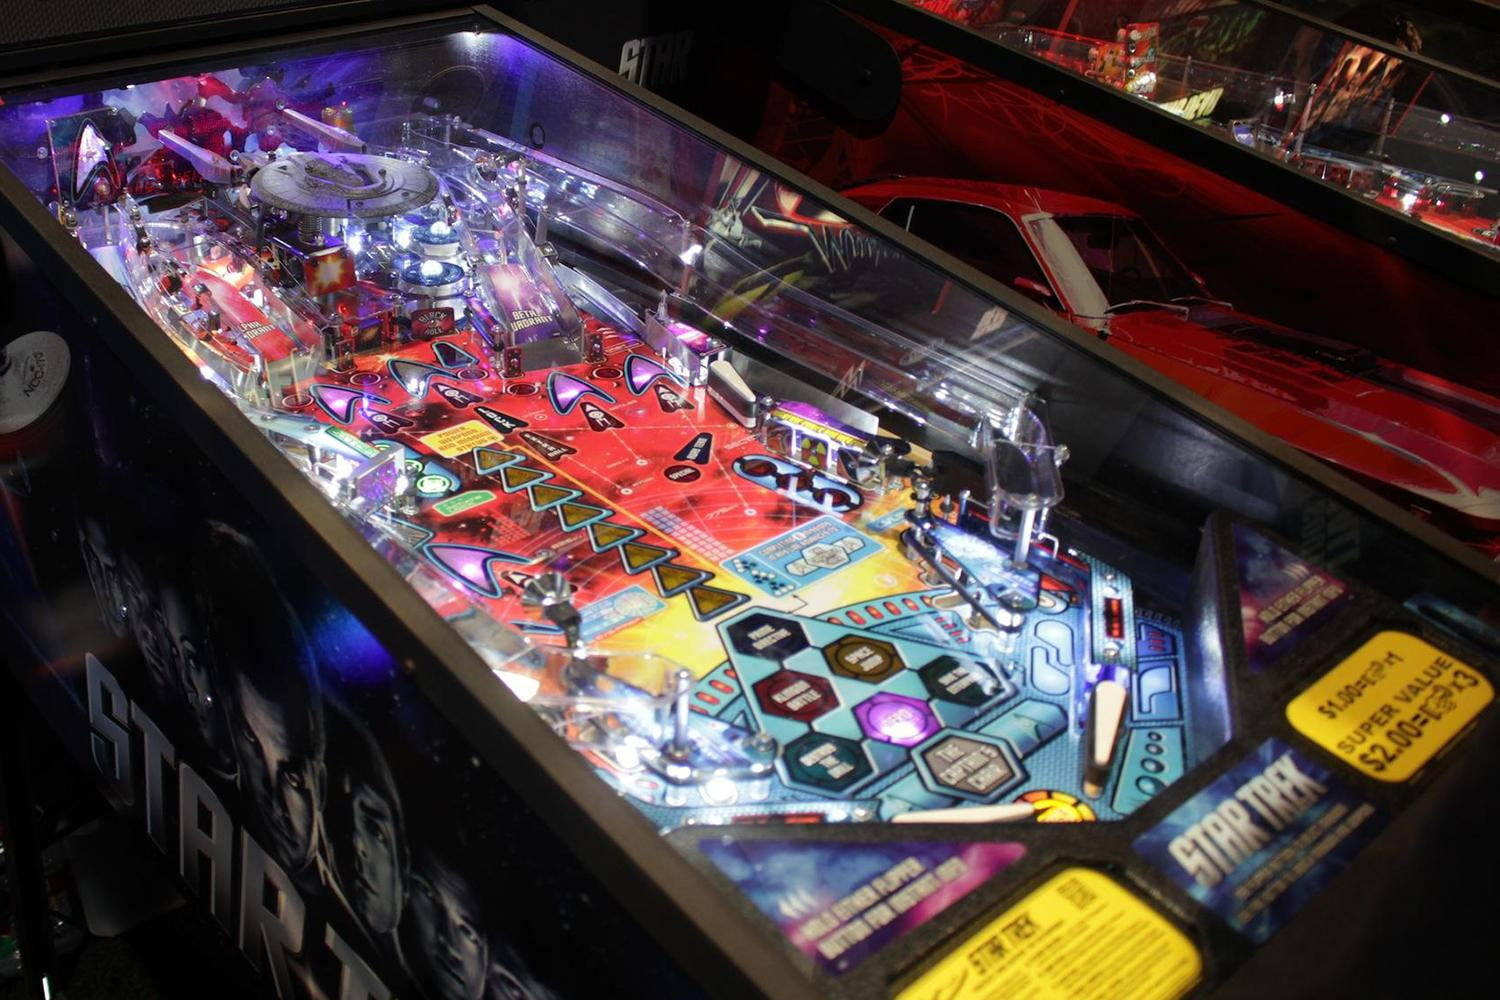 Pinball is making a comeback, and Stern's booth at CES